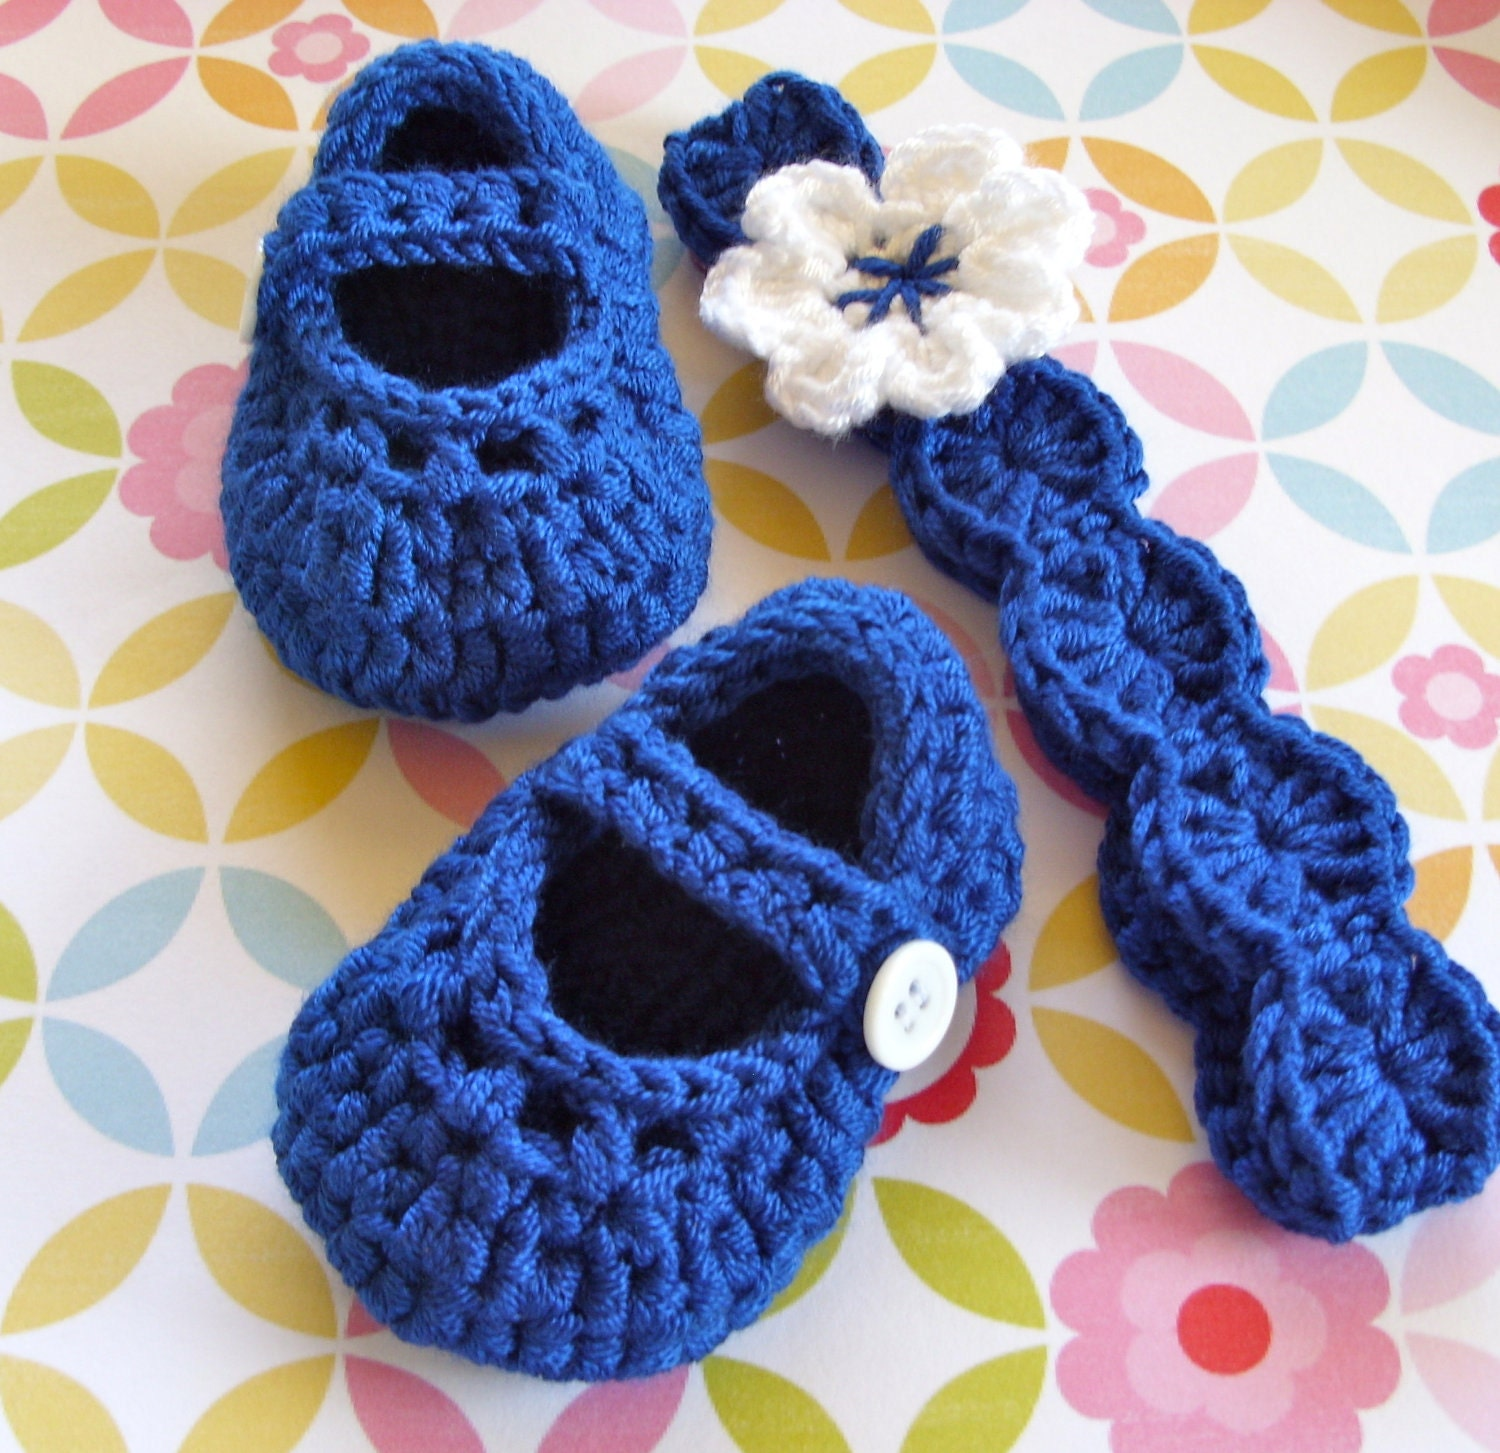 Baby Girl Mary Jane Shoes Matching Headband Set Bright Blue Modern Crochet Booties 3/6 Months Size 2 - LisaCorinneHandmade